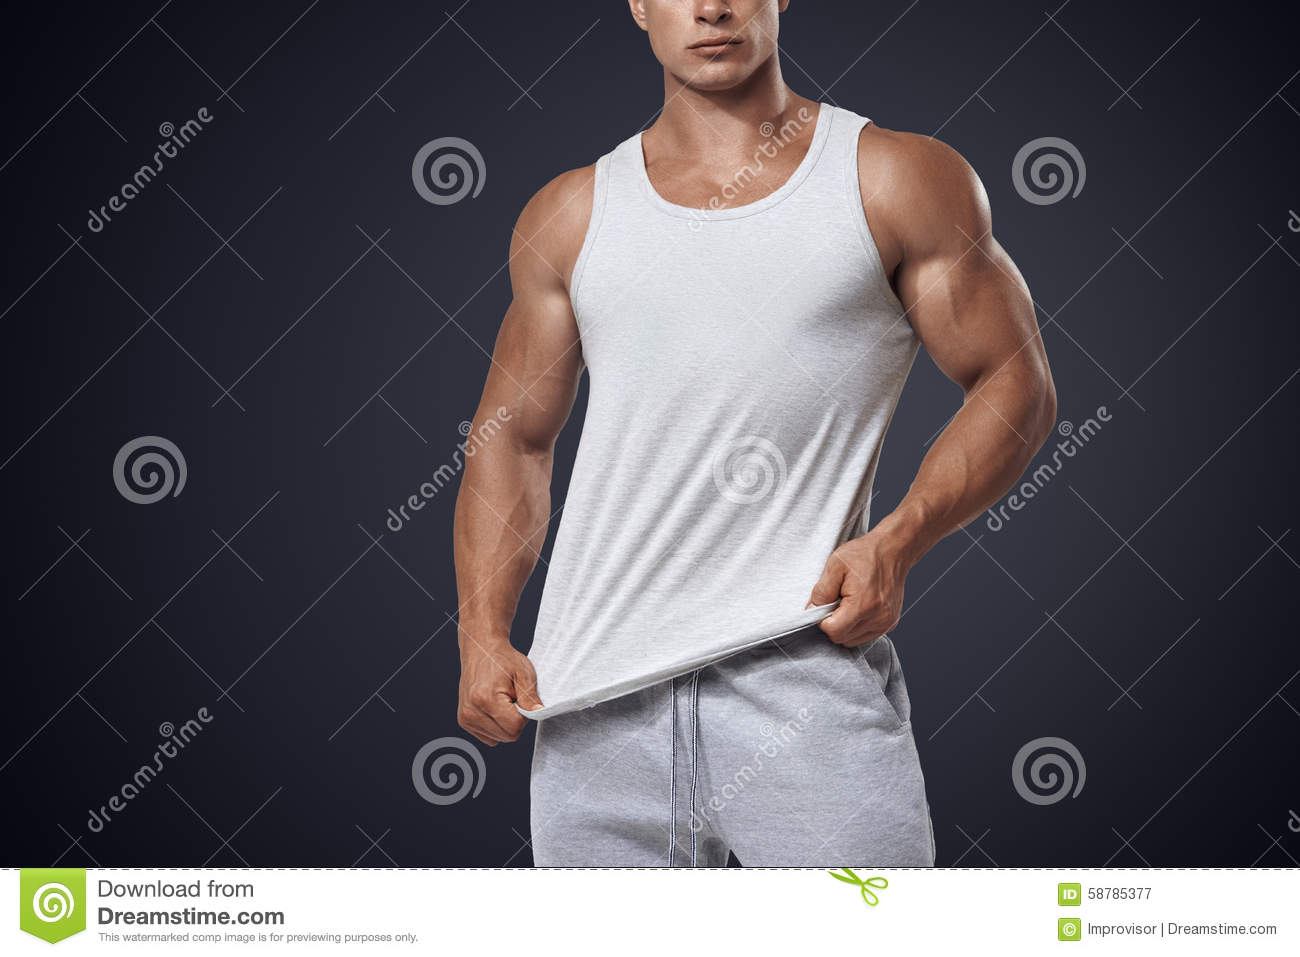 d5a0bc1dacb8a Close up photo of attractive bodybuilder wearing blank white sleeveless t- shirt